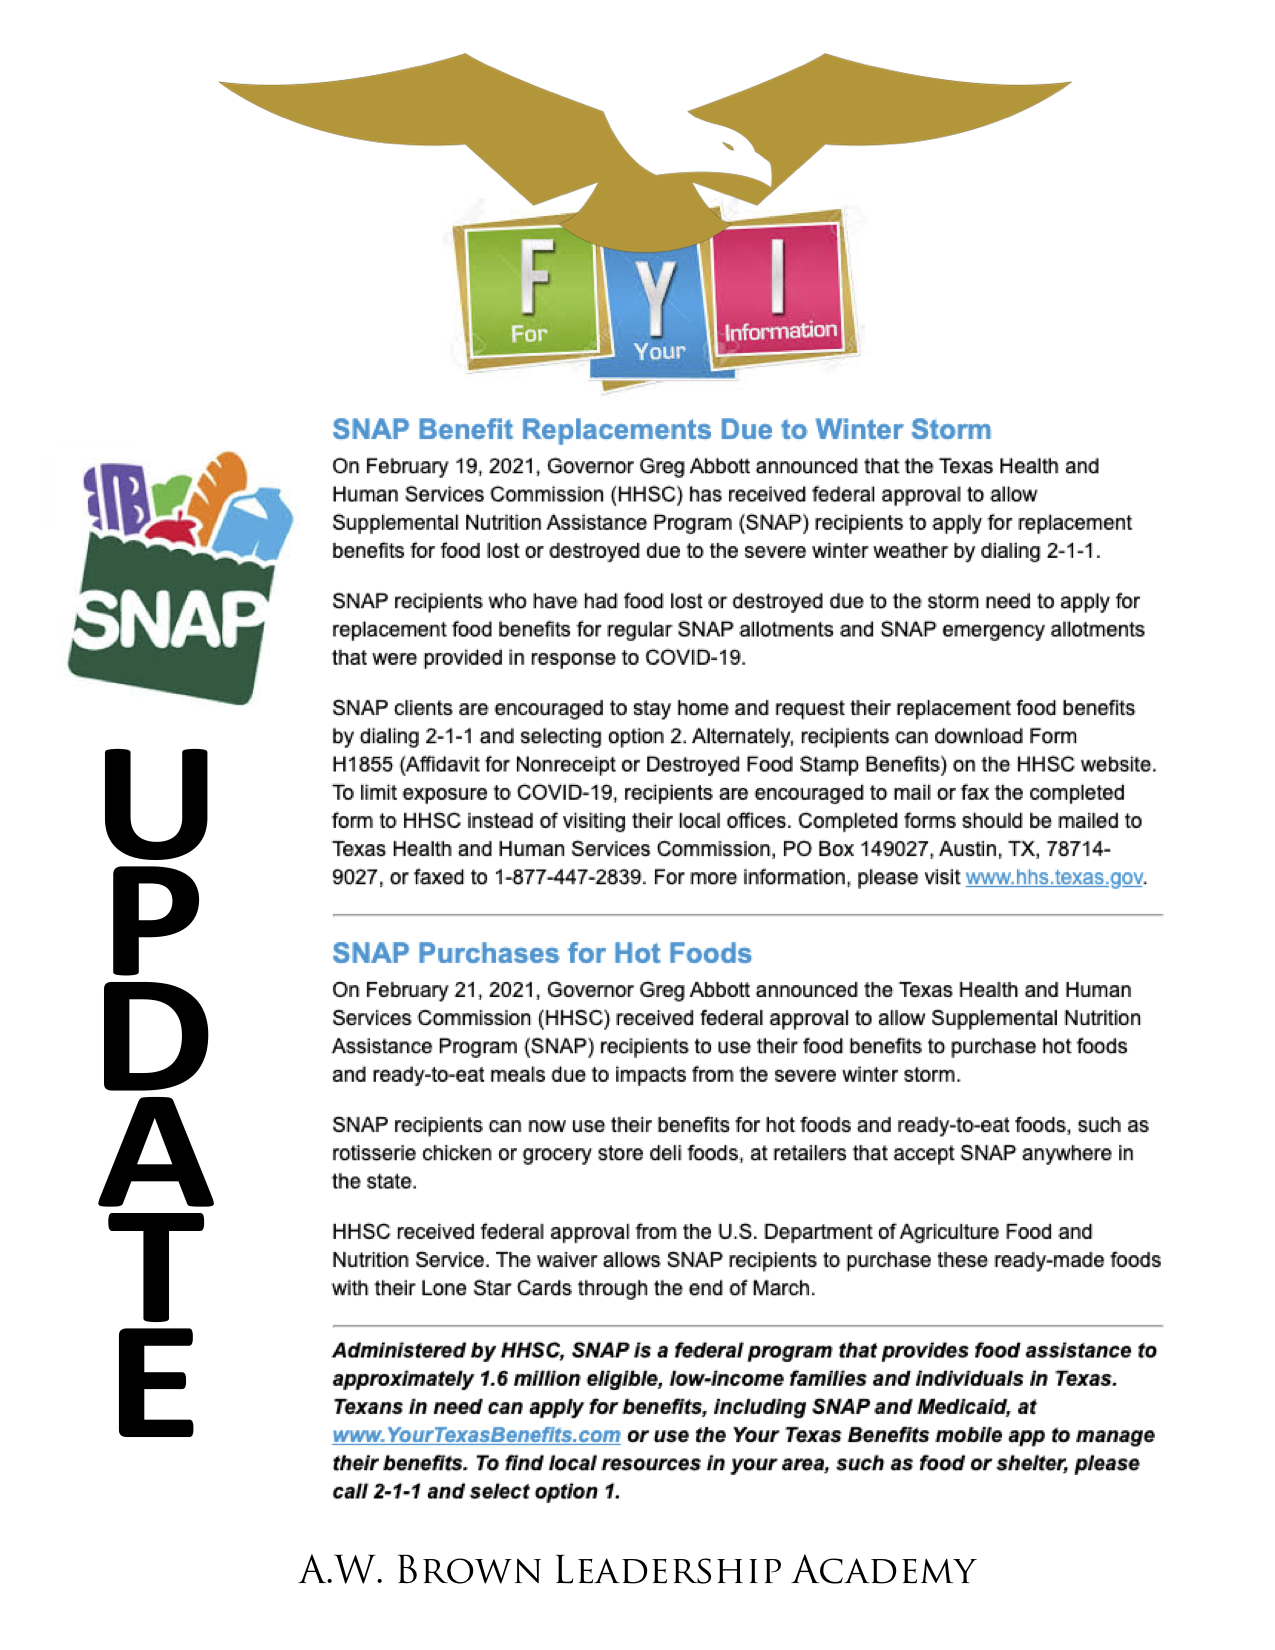 SNAP Benefit Updates